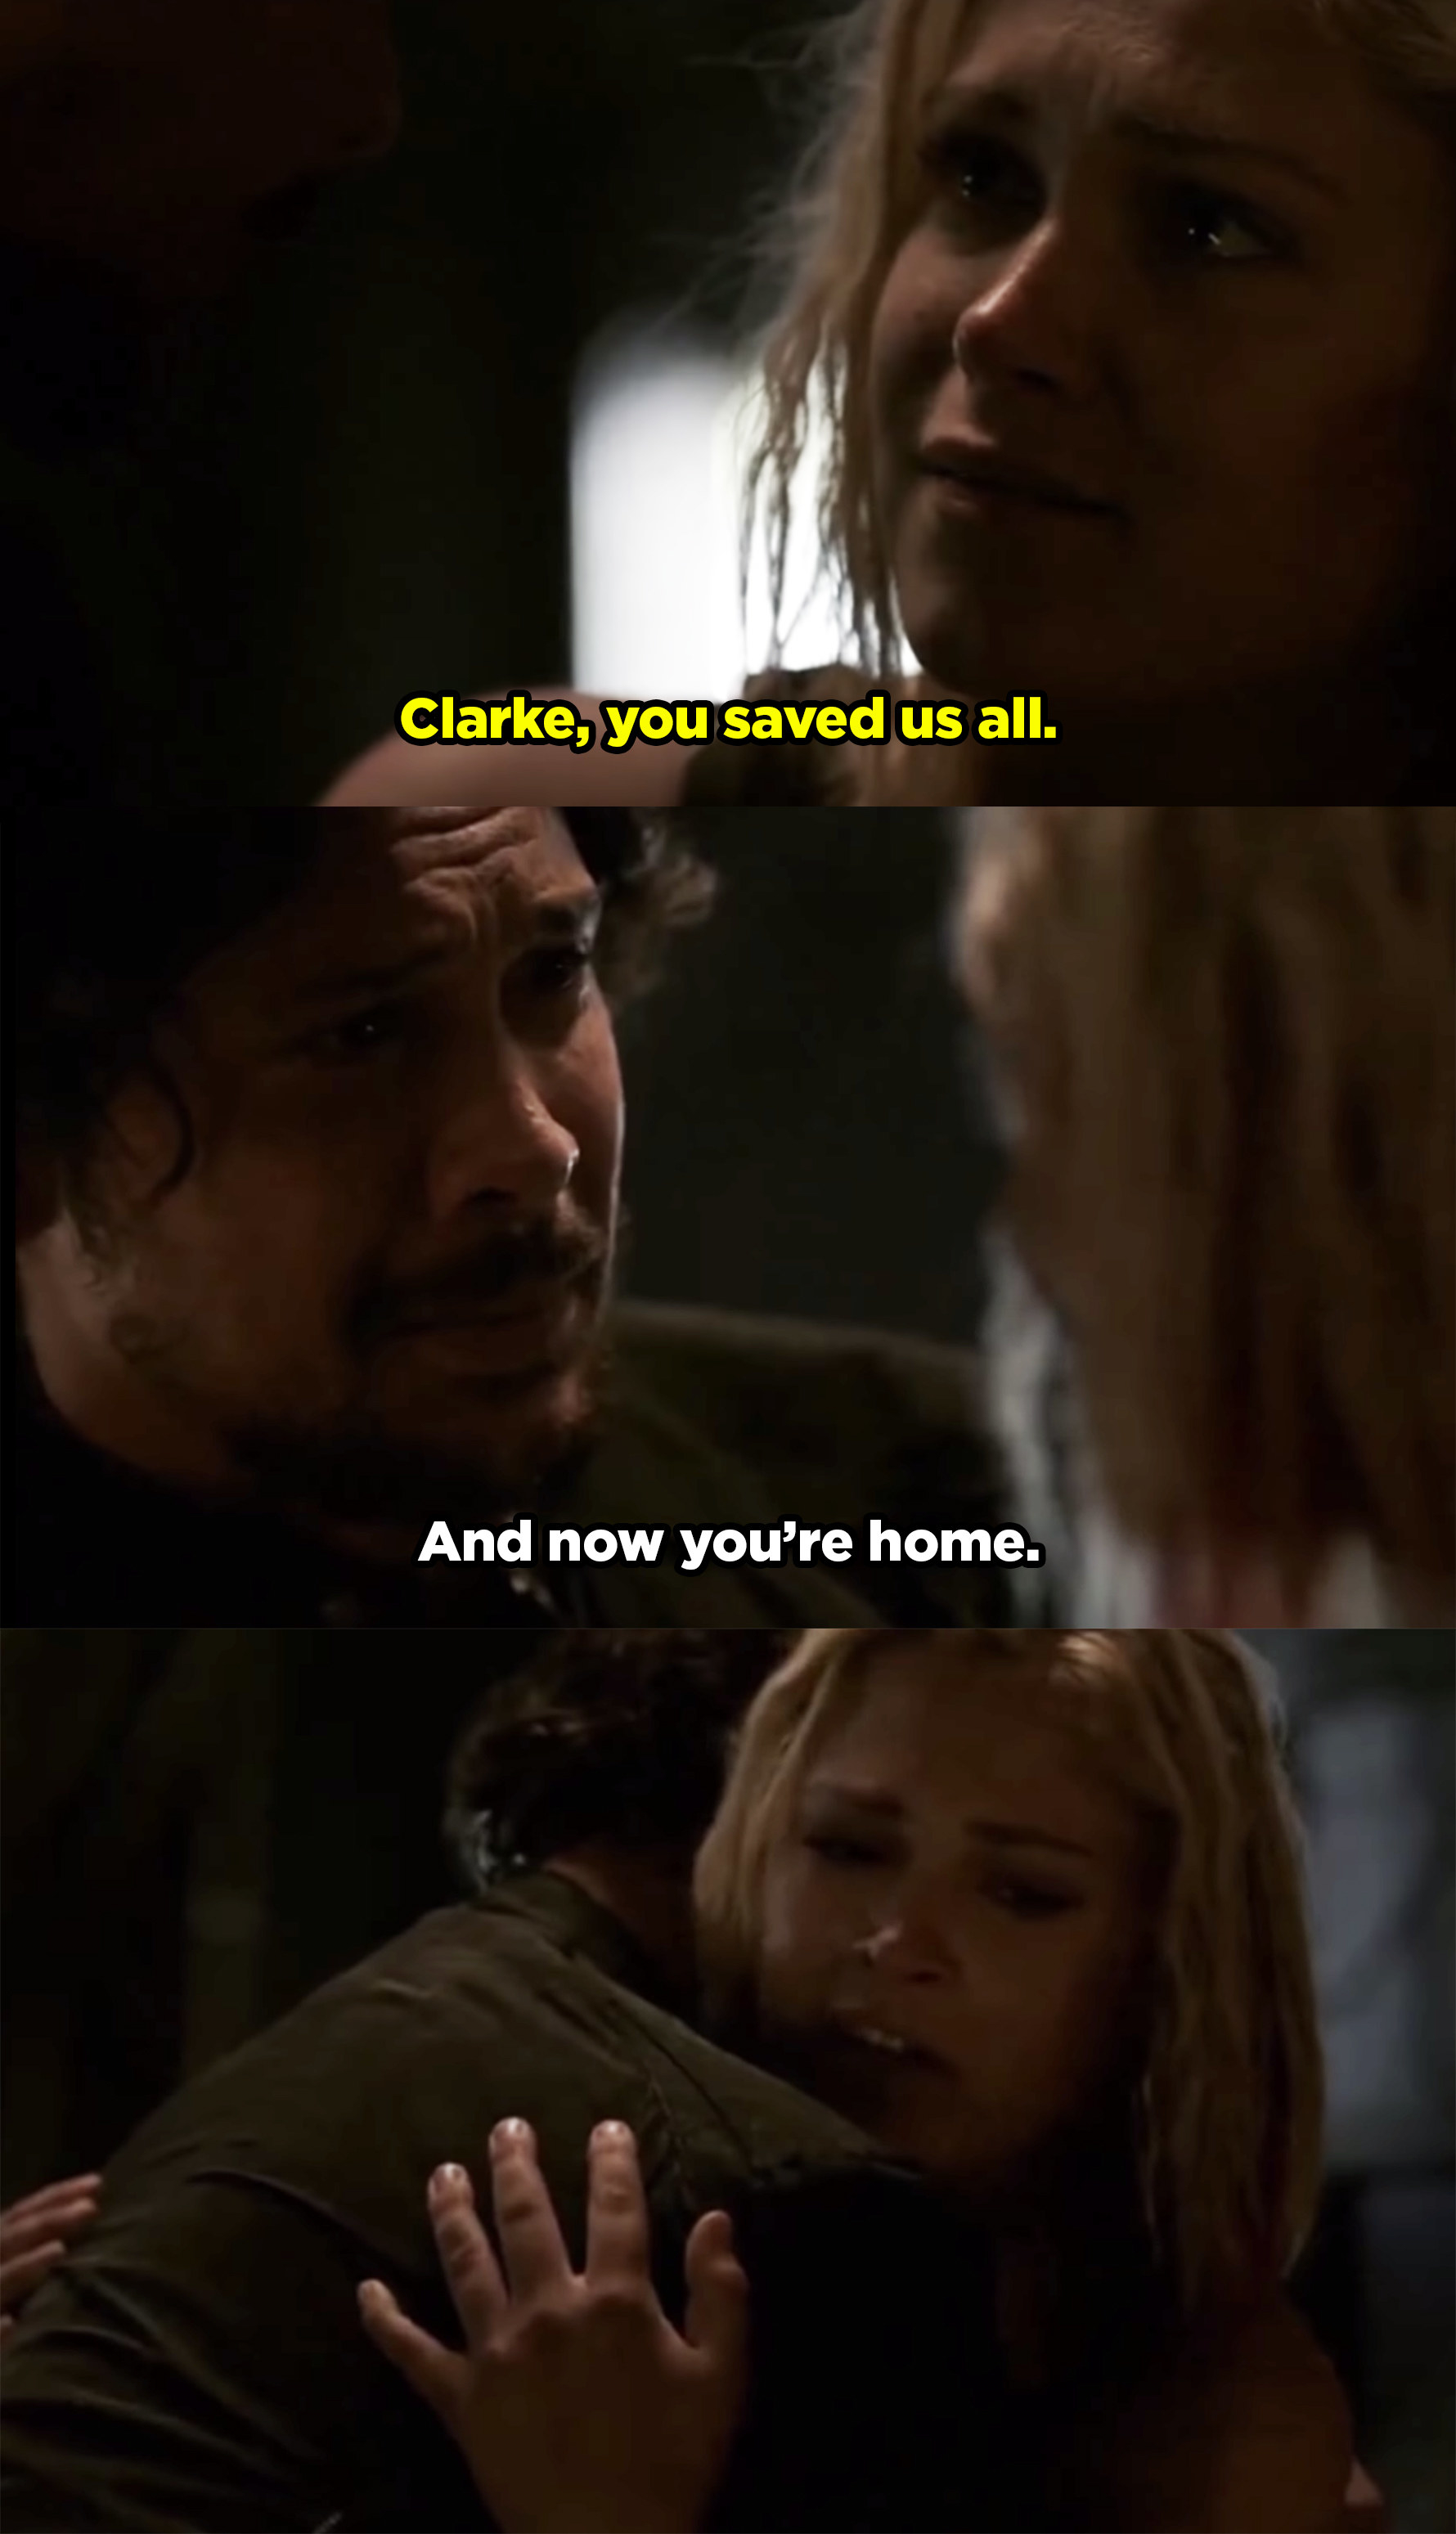 Bellamy telling Clarke she saved everyone and now he's able to come home. Then they hug.